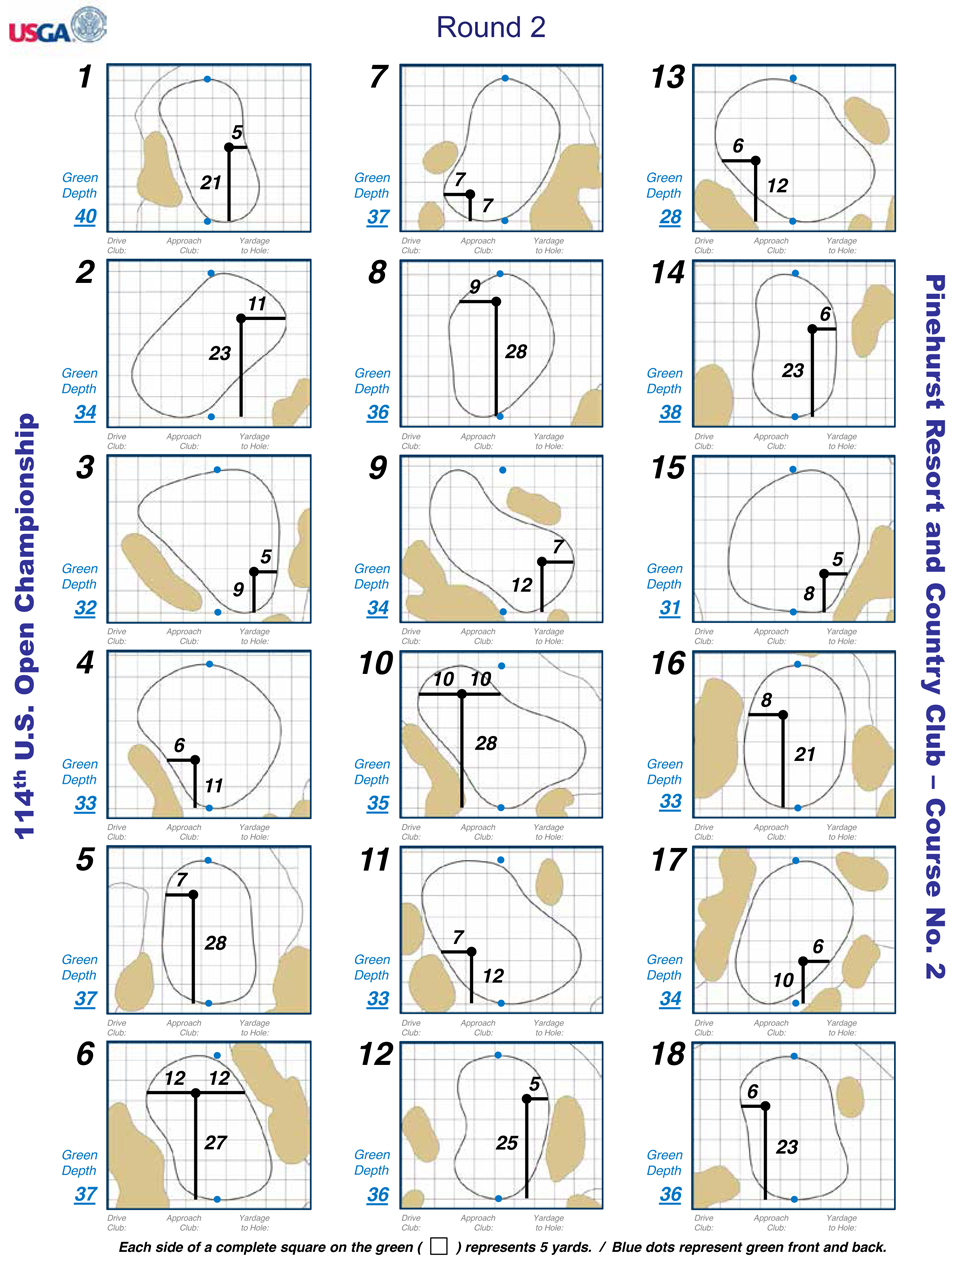 The hole locations for the second round at the 2014 U.S. Open at Pinehurst No. 2.